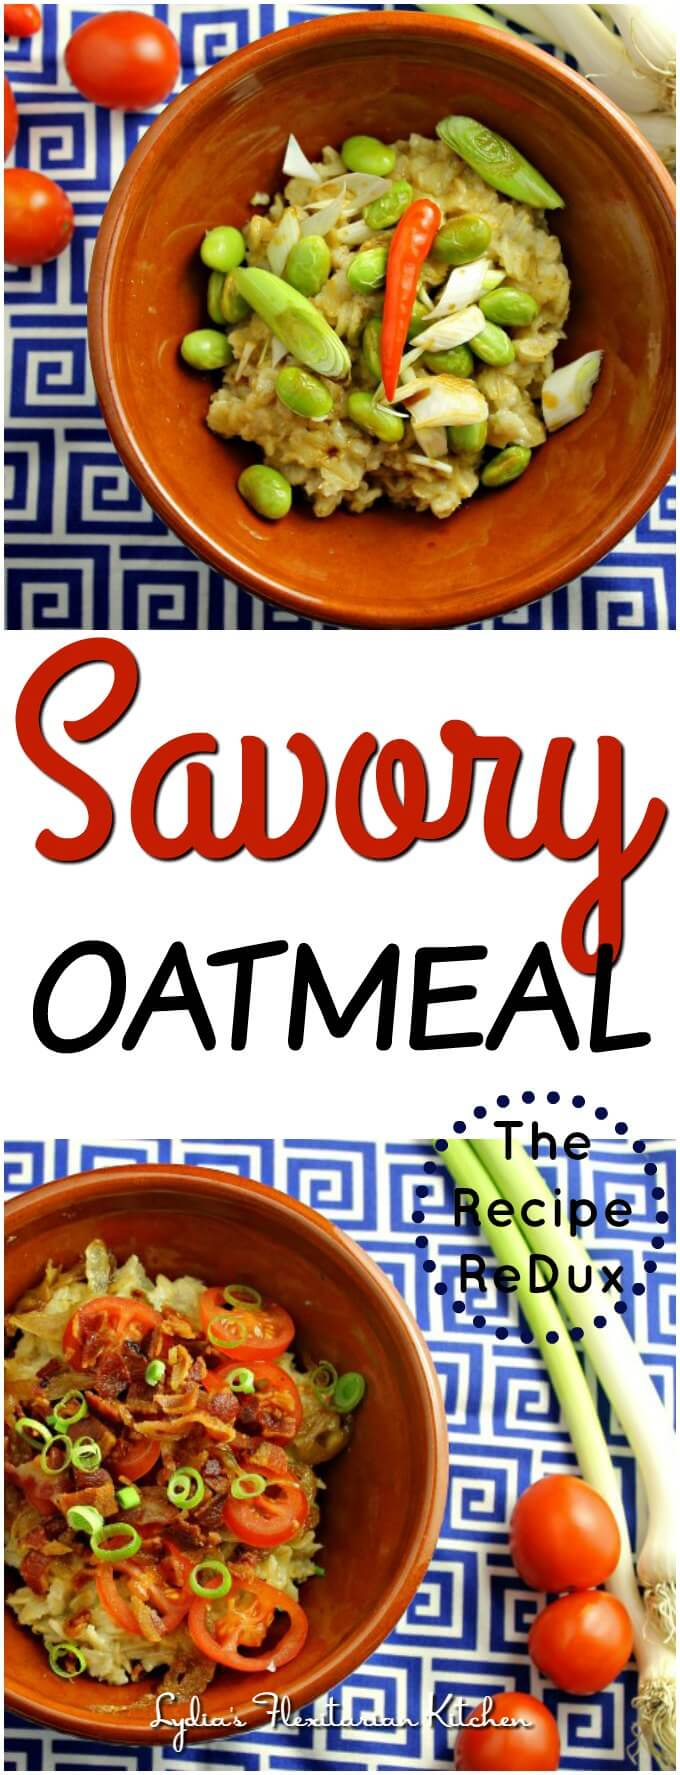 Bored with breakfast? Wake it up with a savory oatmeal! Choose from a vegan or omnivorous version, or make your own!